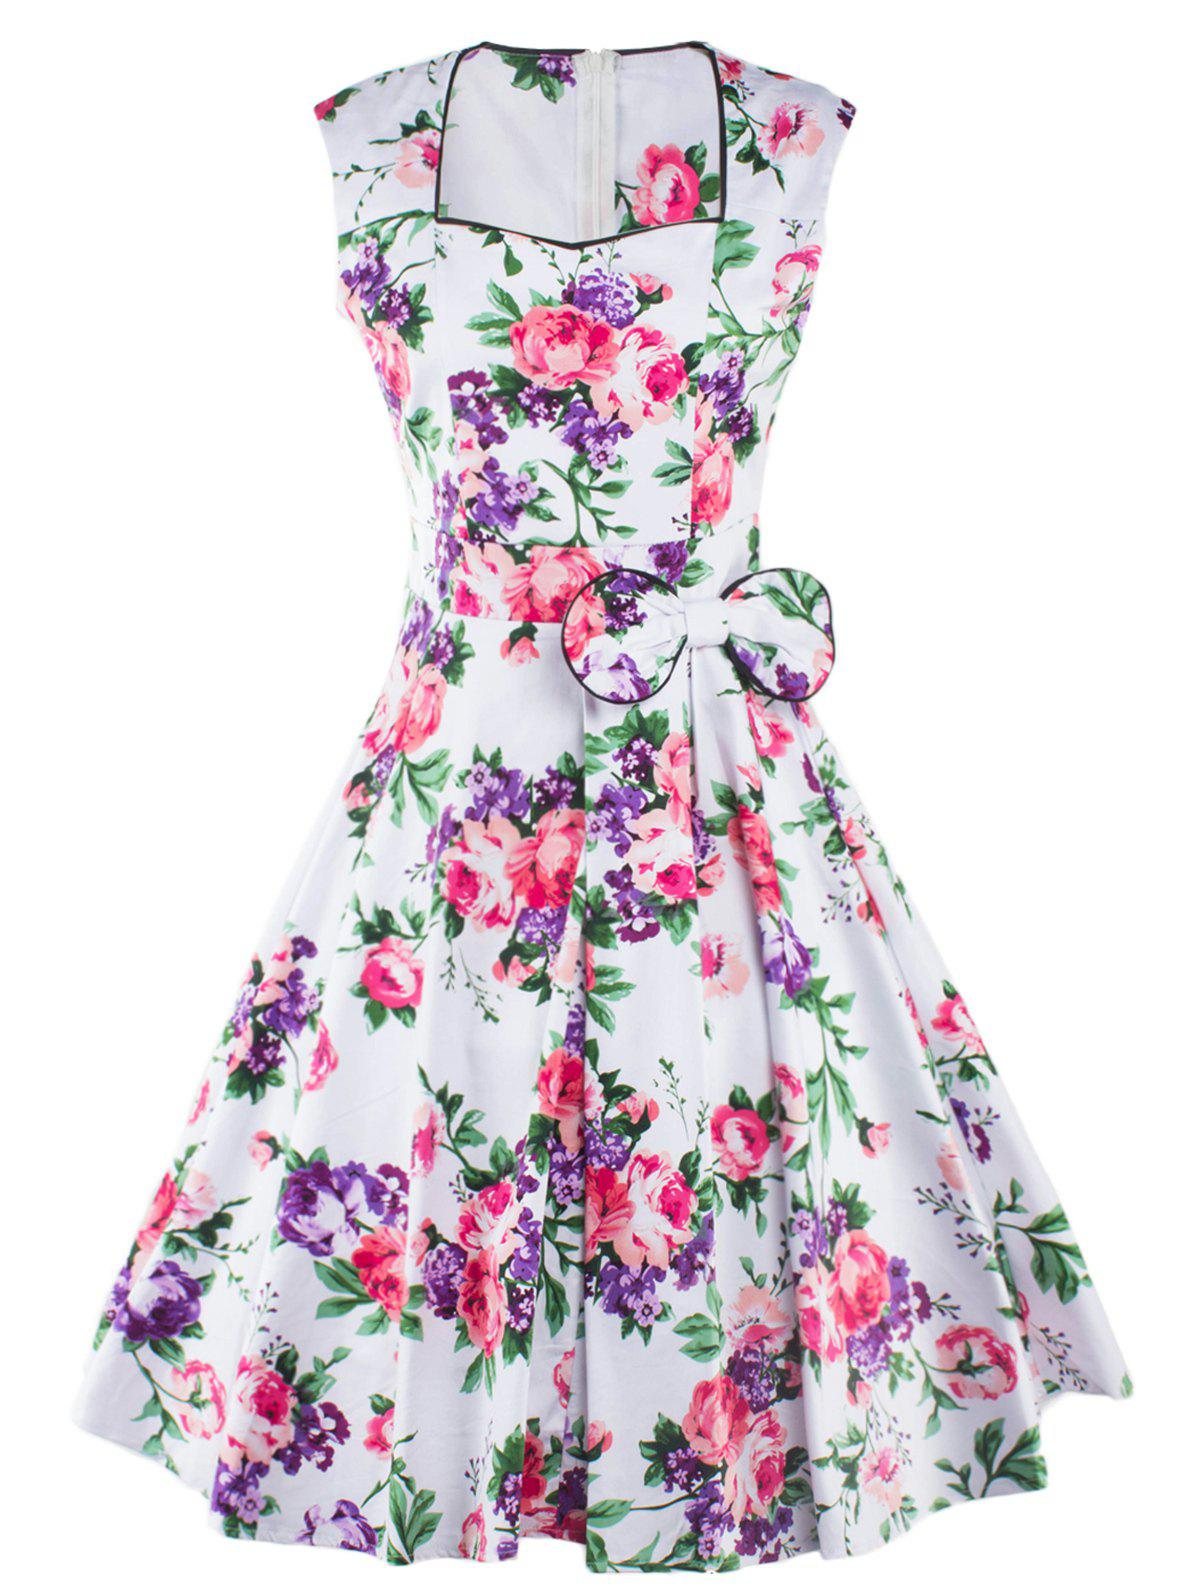 Retro Sleeveless Sweetheart Neck Floral Pattern Womens DressWomen<br><br><br>Size: M<br>Color: WHITE